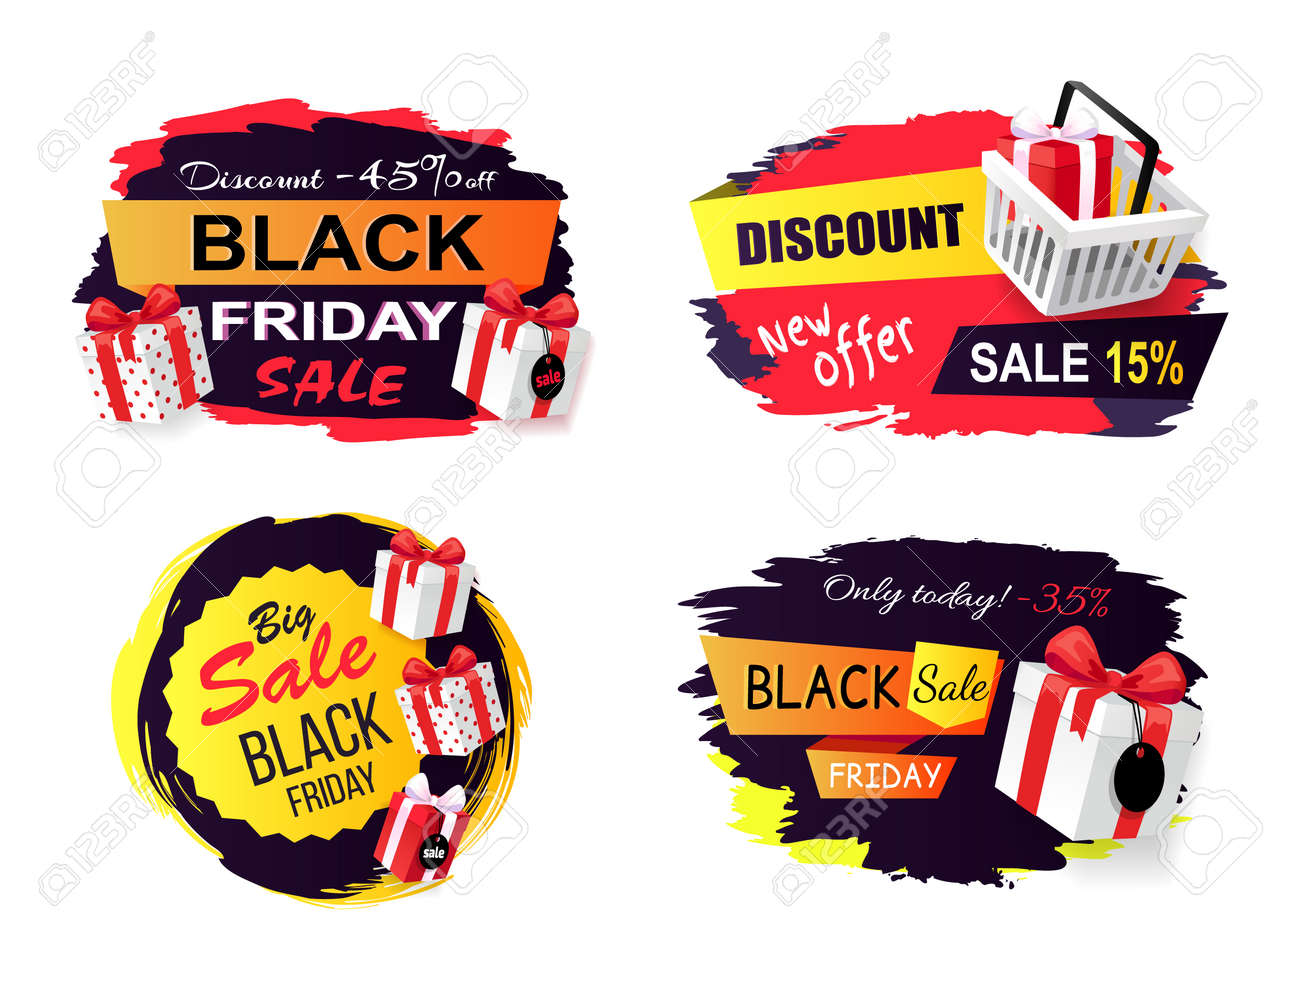 Black friday sale promo stickers set of icons advertising coupons with gift boxes wholesale